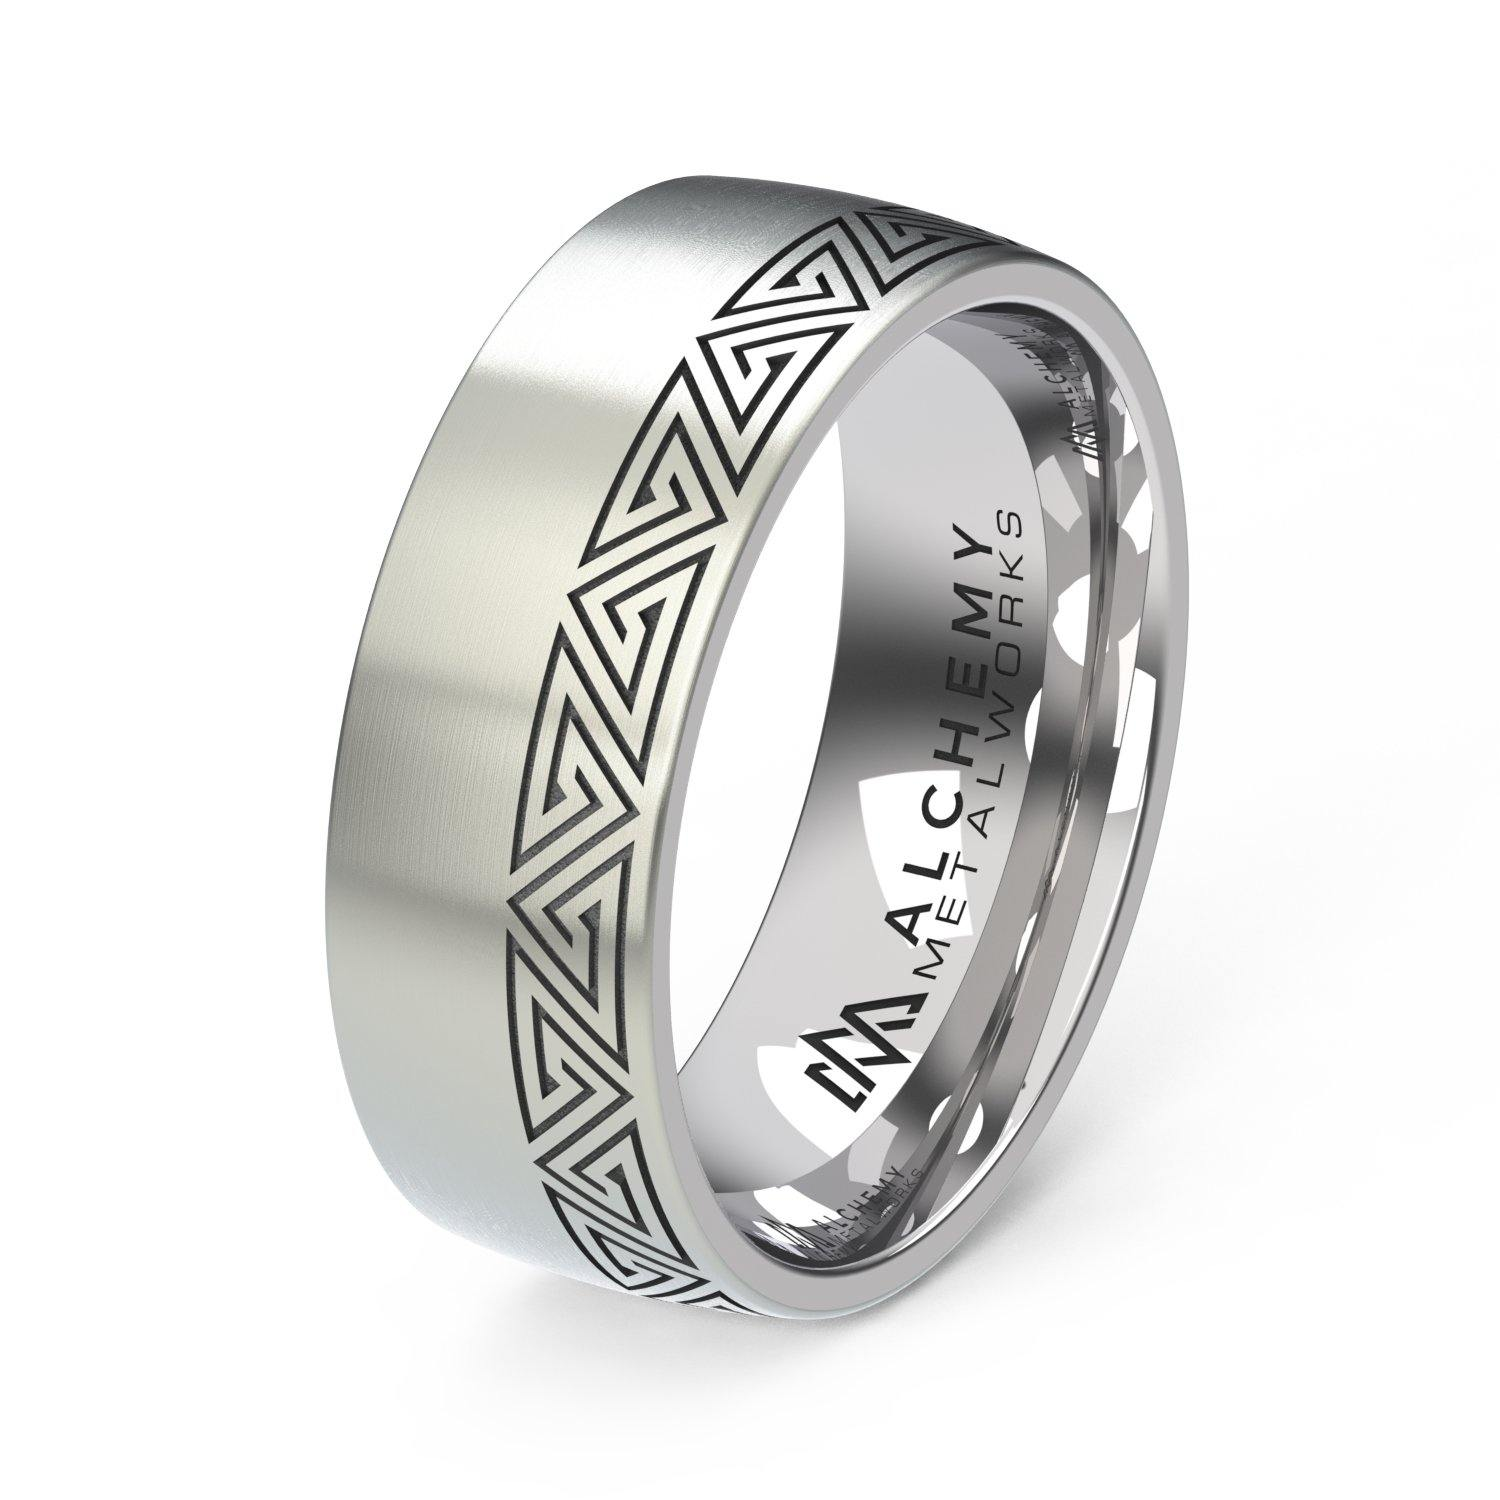 Laser Engraved Titanium Ring - Labyrinth, Offset